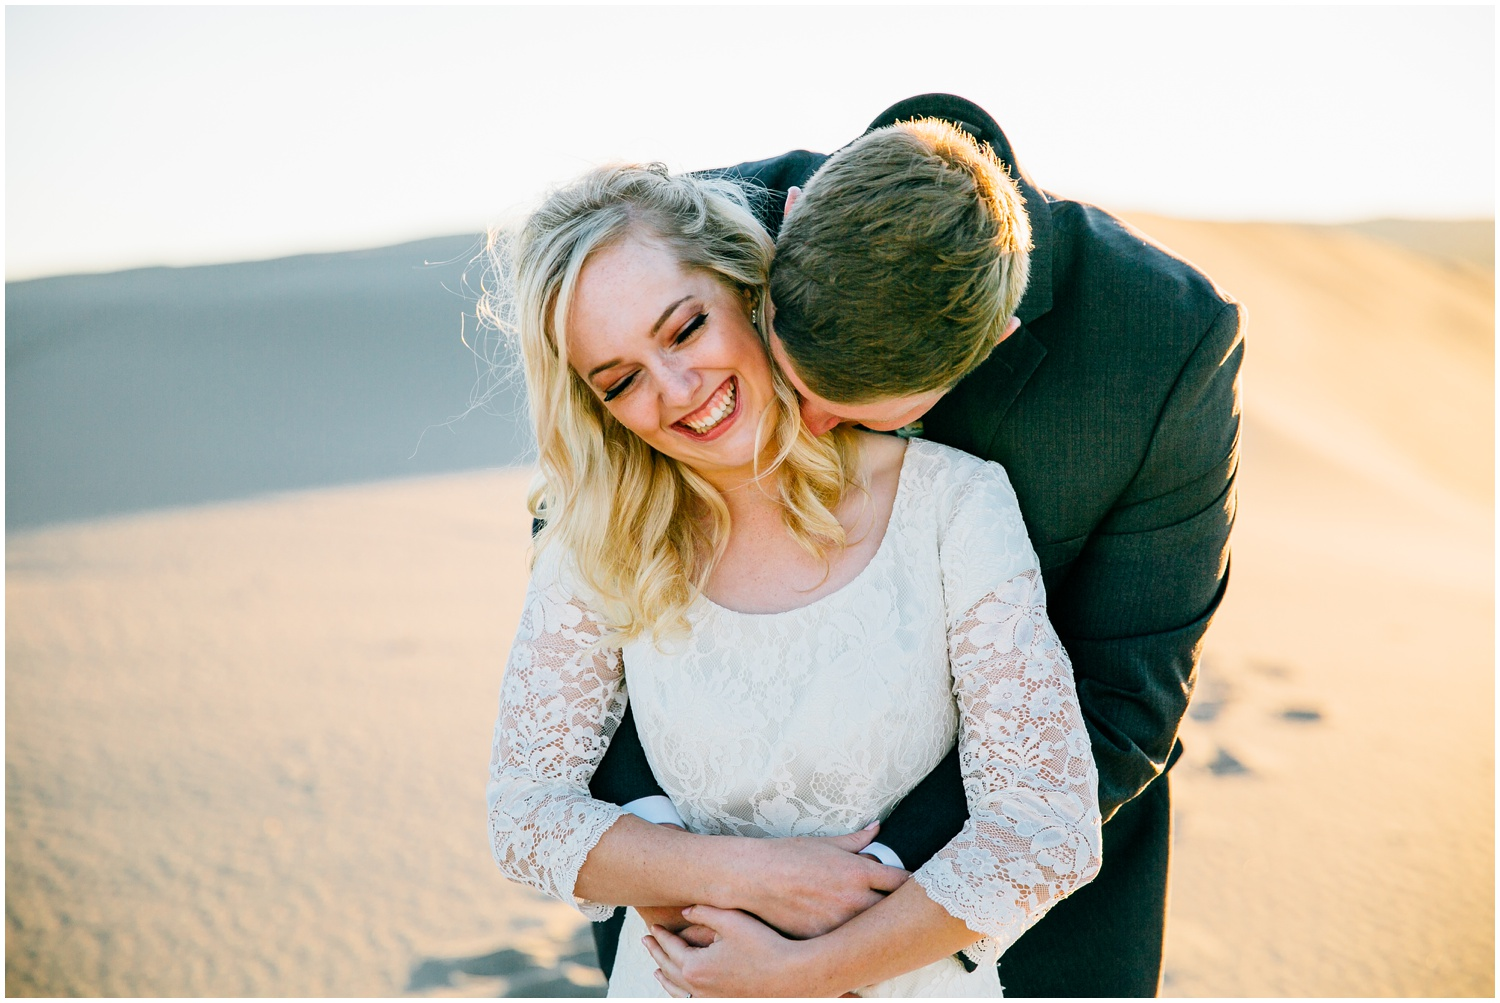 saint-anthony-sand-dunes-bridals-idaho-engagements-colorado-wyoming-wedding-photographer_0740.jpg